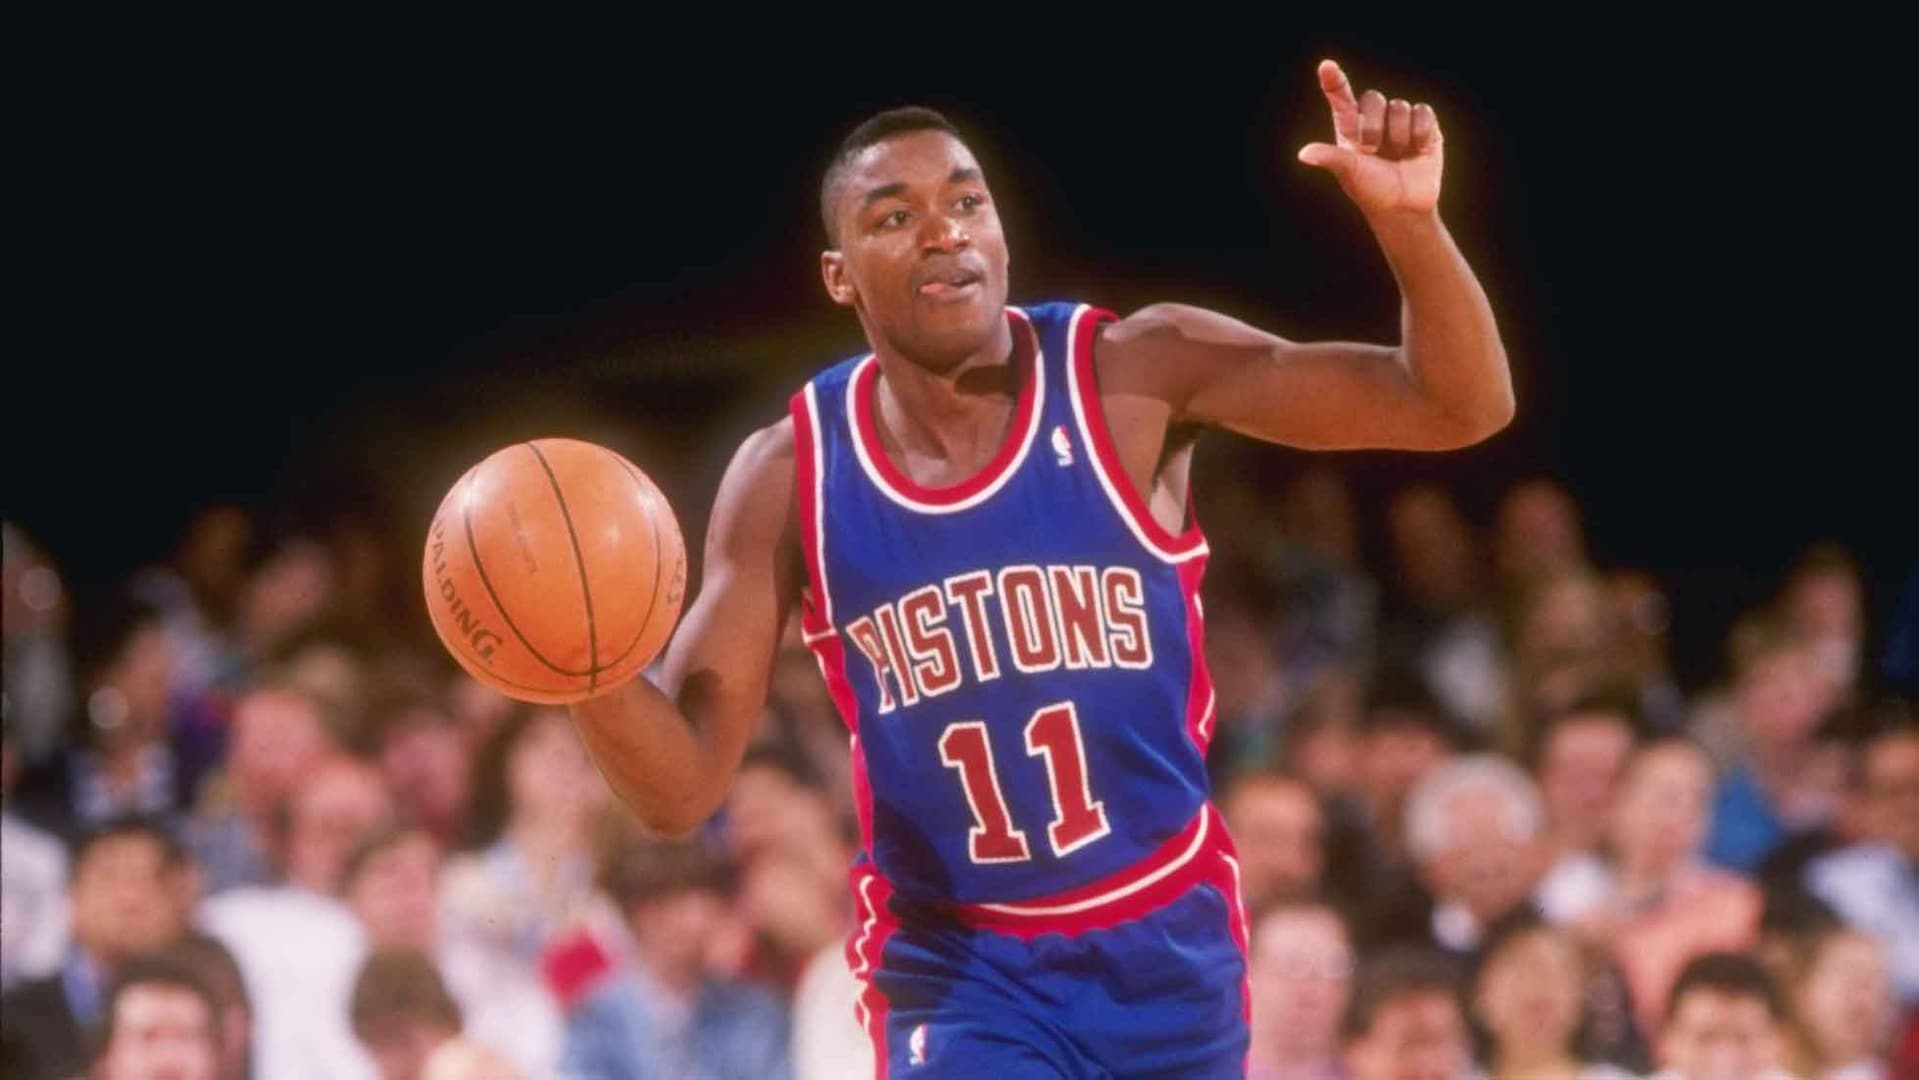 Legendary Moments In NBA History: Thomas becomes Pistons' all-time ...